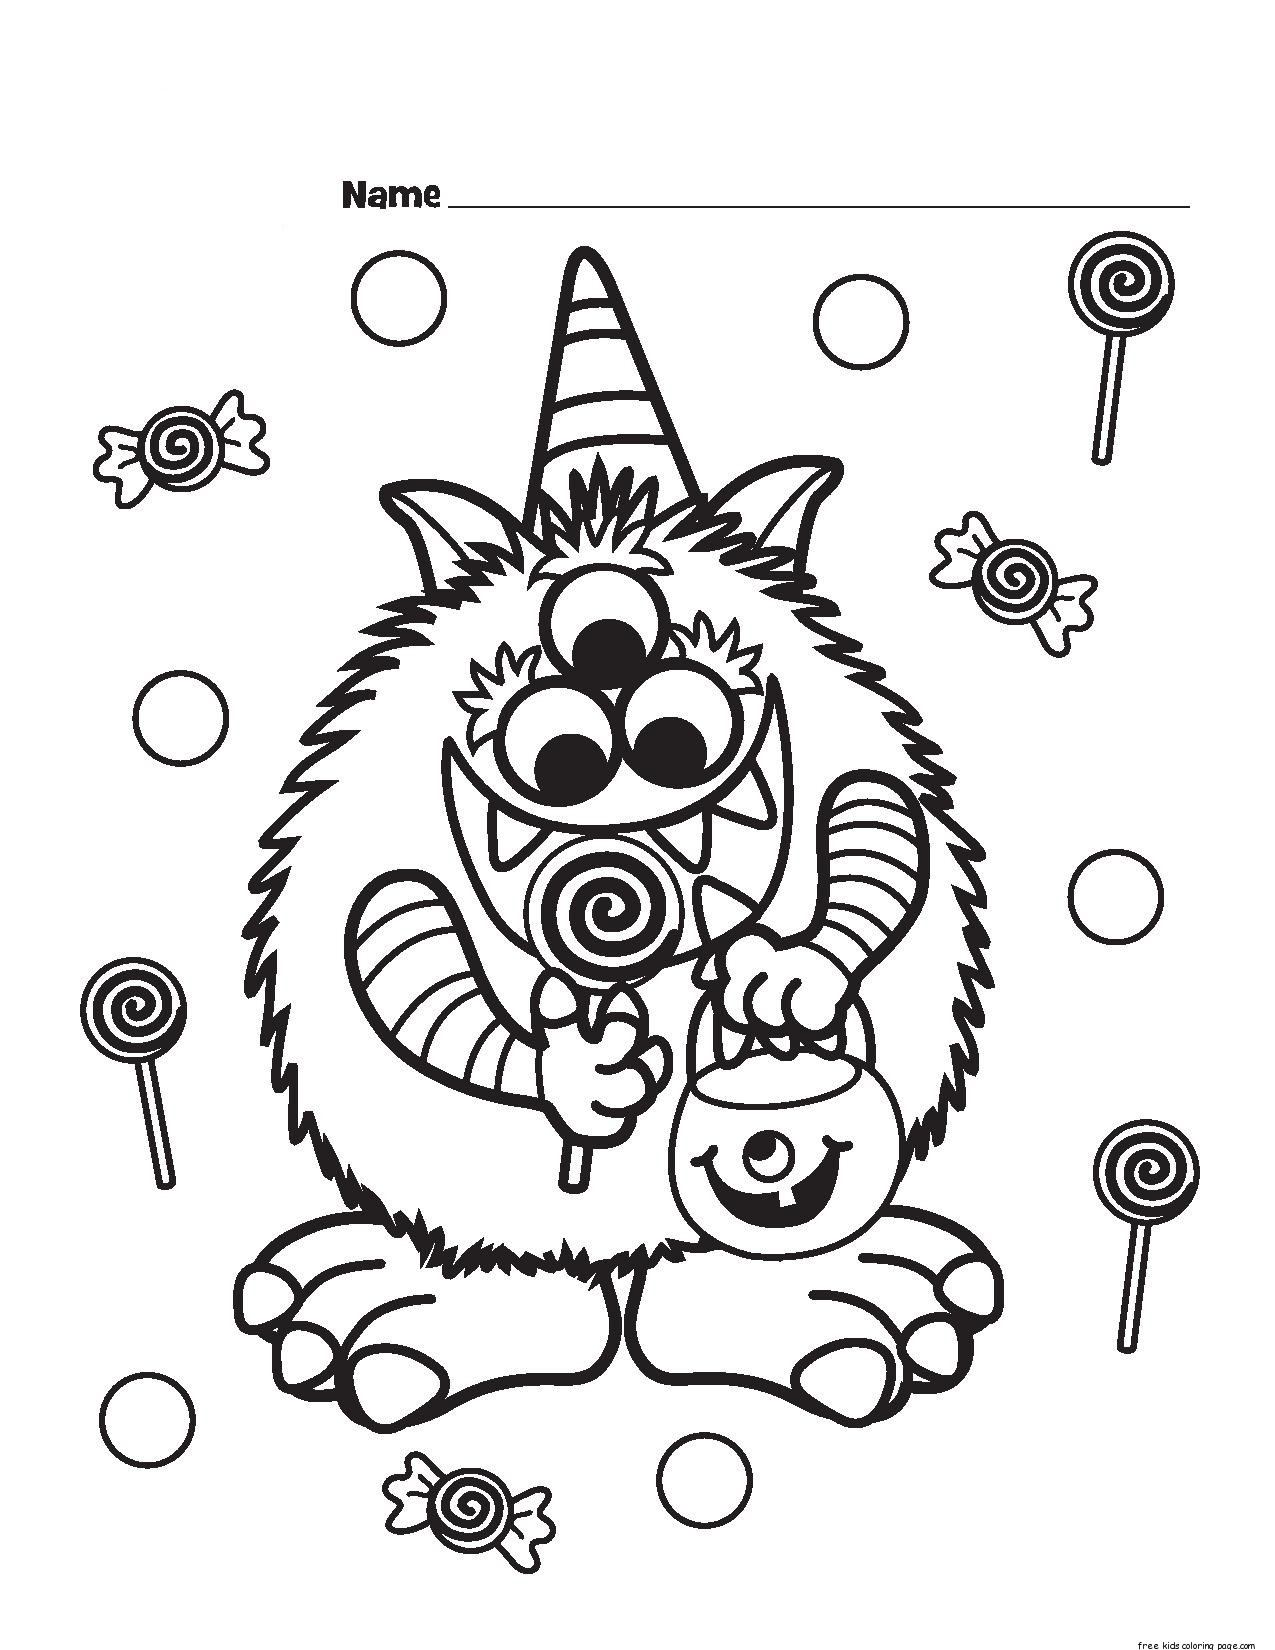 1275x1650 Print Out Halloween Candy Critter Coloring Page For Kidsfree